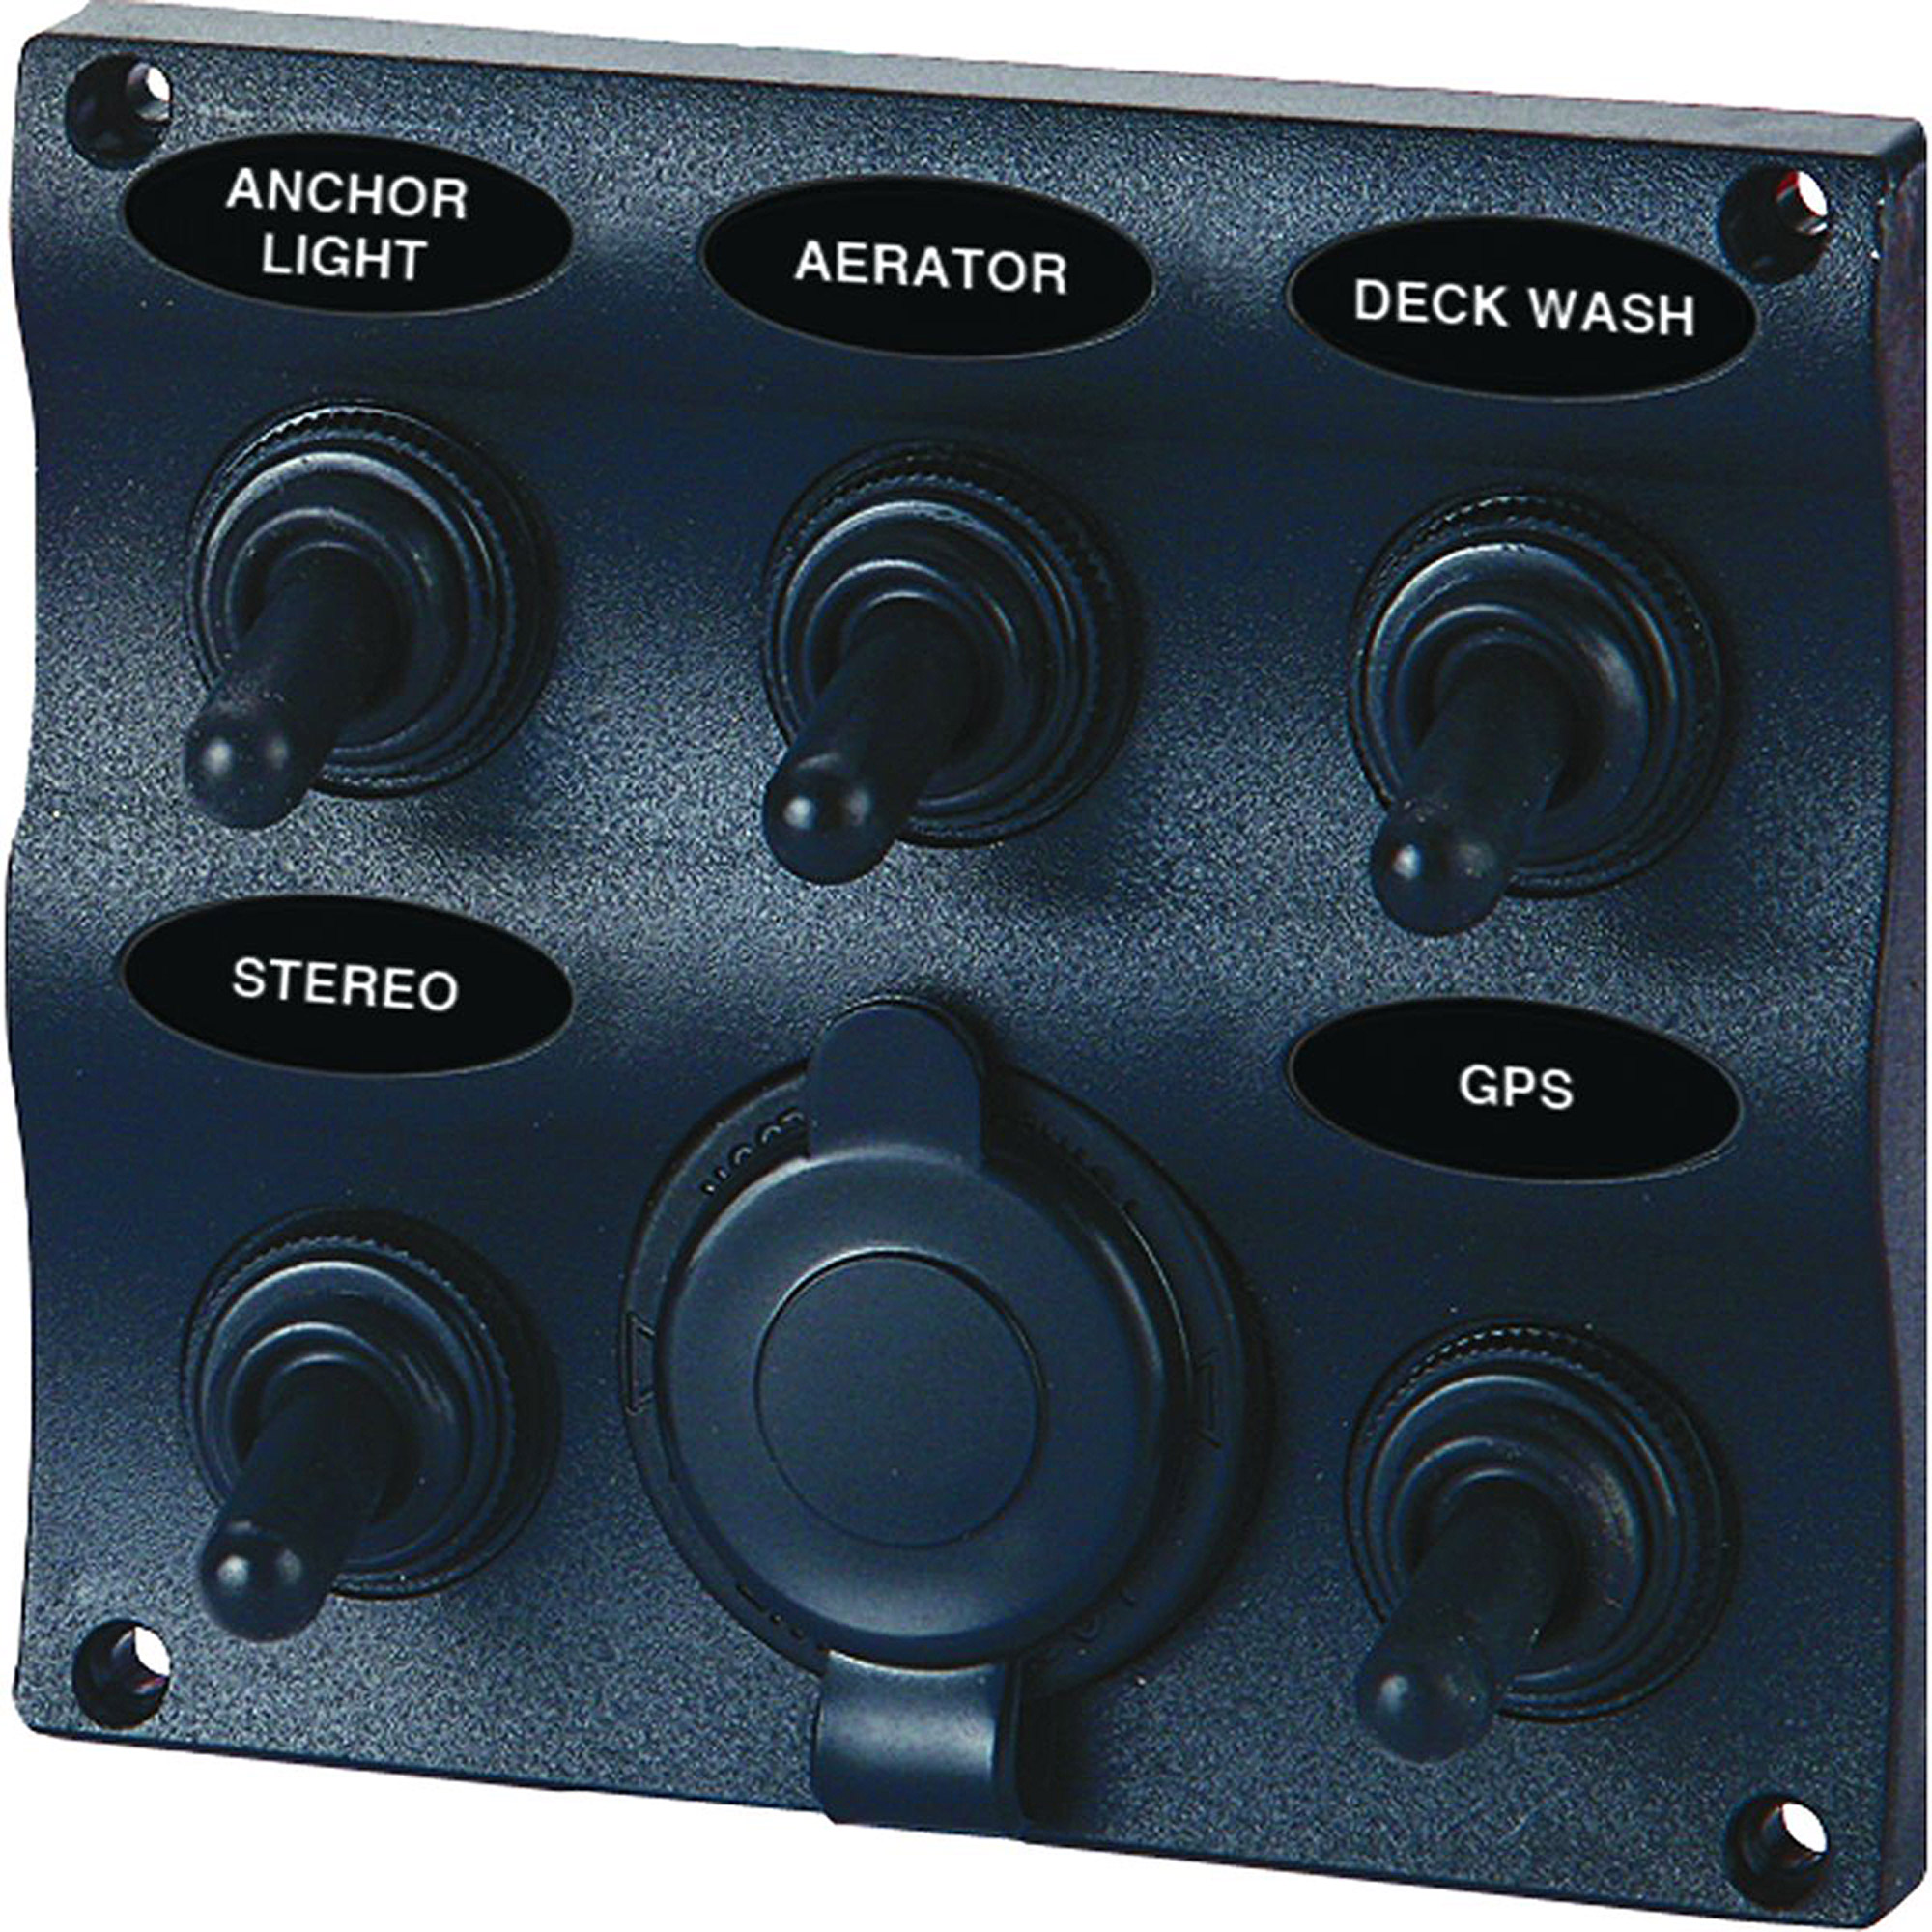 SeaSense 5 Gang Toggle Switch Panel with 12-Volt Outlet, Wave Design